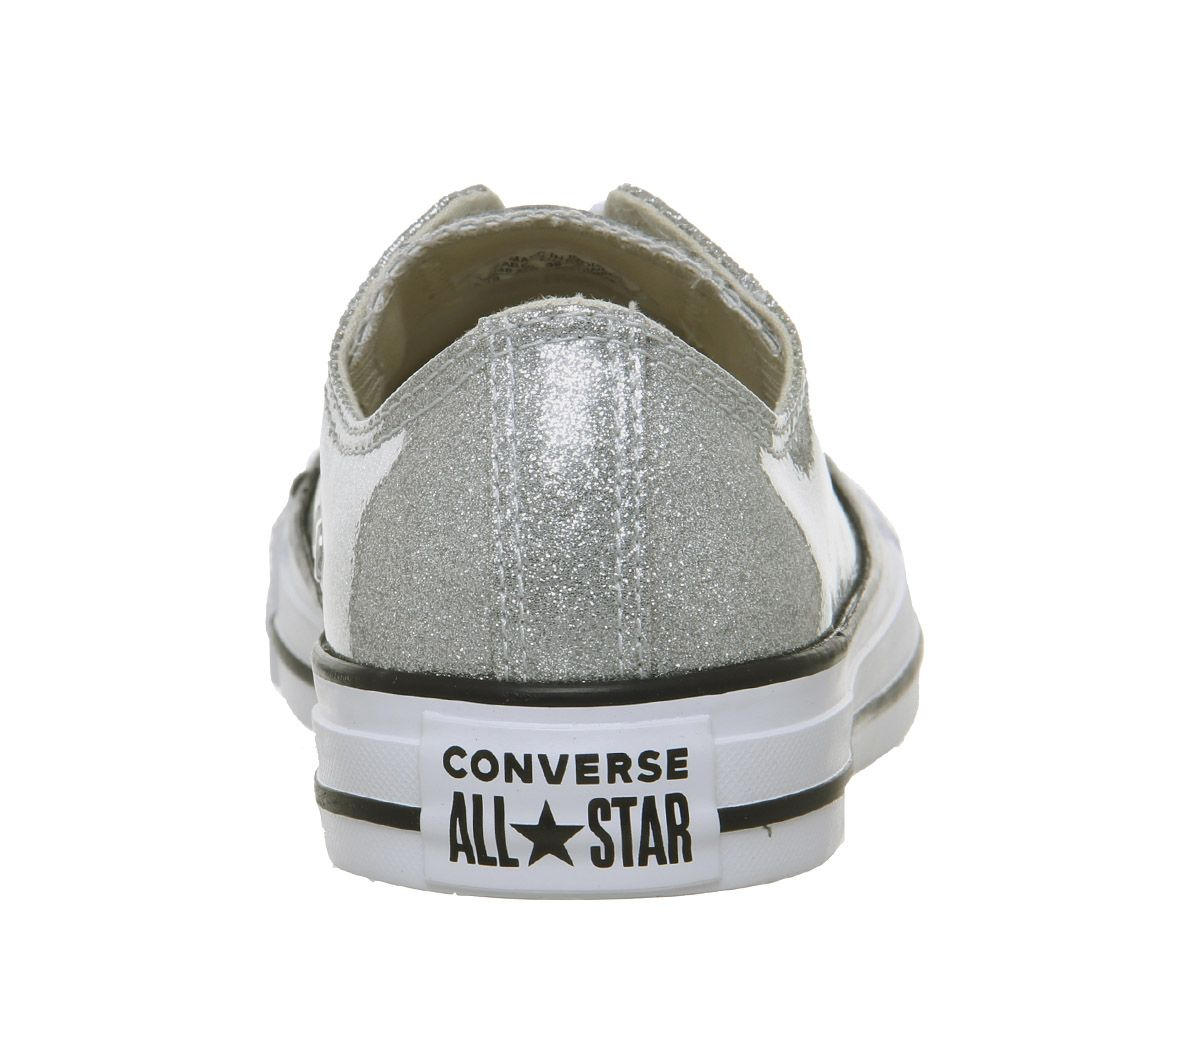 Womens-Converse-Converse-All-Star-Low-Trainers-Silver-White-Trainers-Shoes thumbnail 8